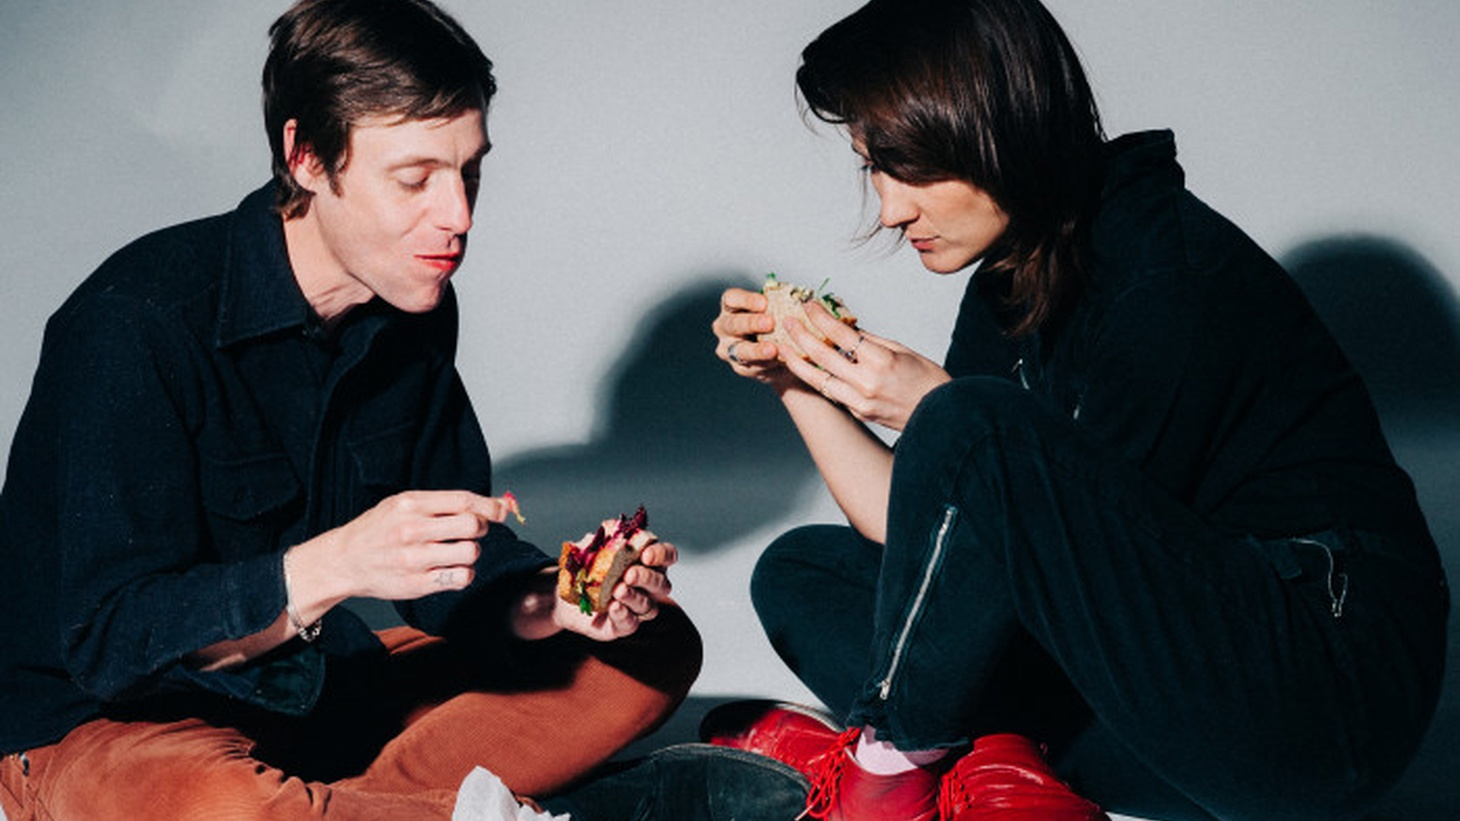 Welsh singer Cate Le Bon and White Fence's Tim Presley mix their styles to create their new project, Drinks.